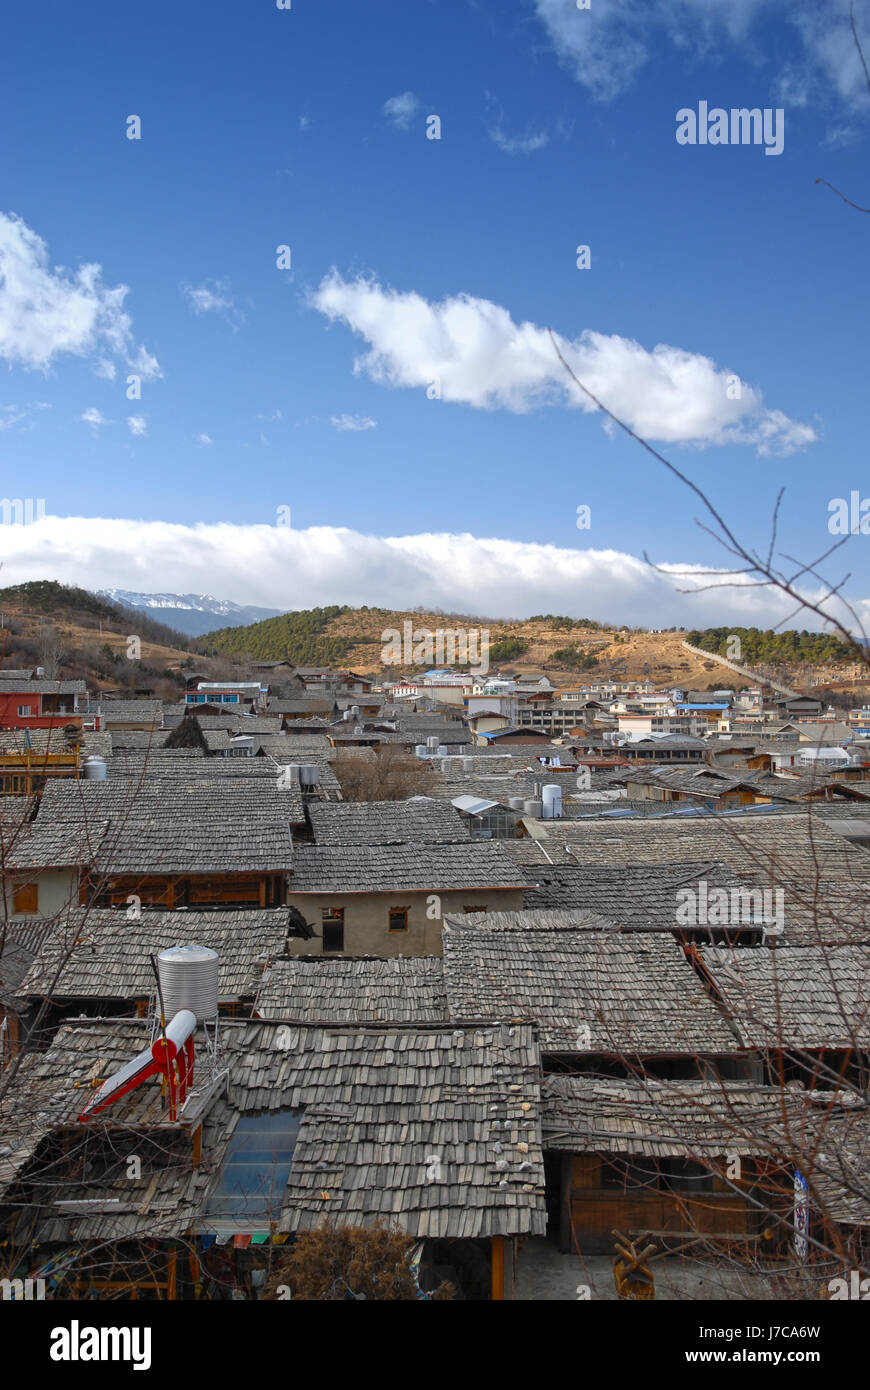 city town asia tibet china himalayas belief city town mountains asia tourism Stock Photo